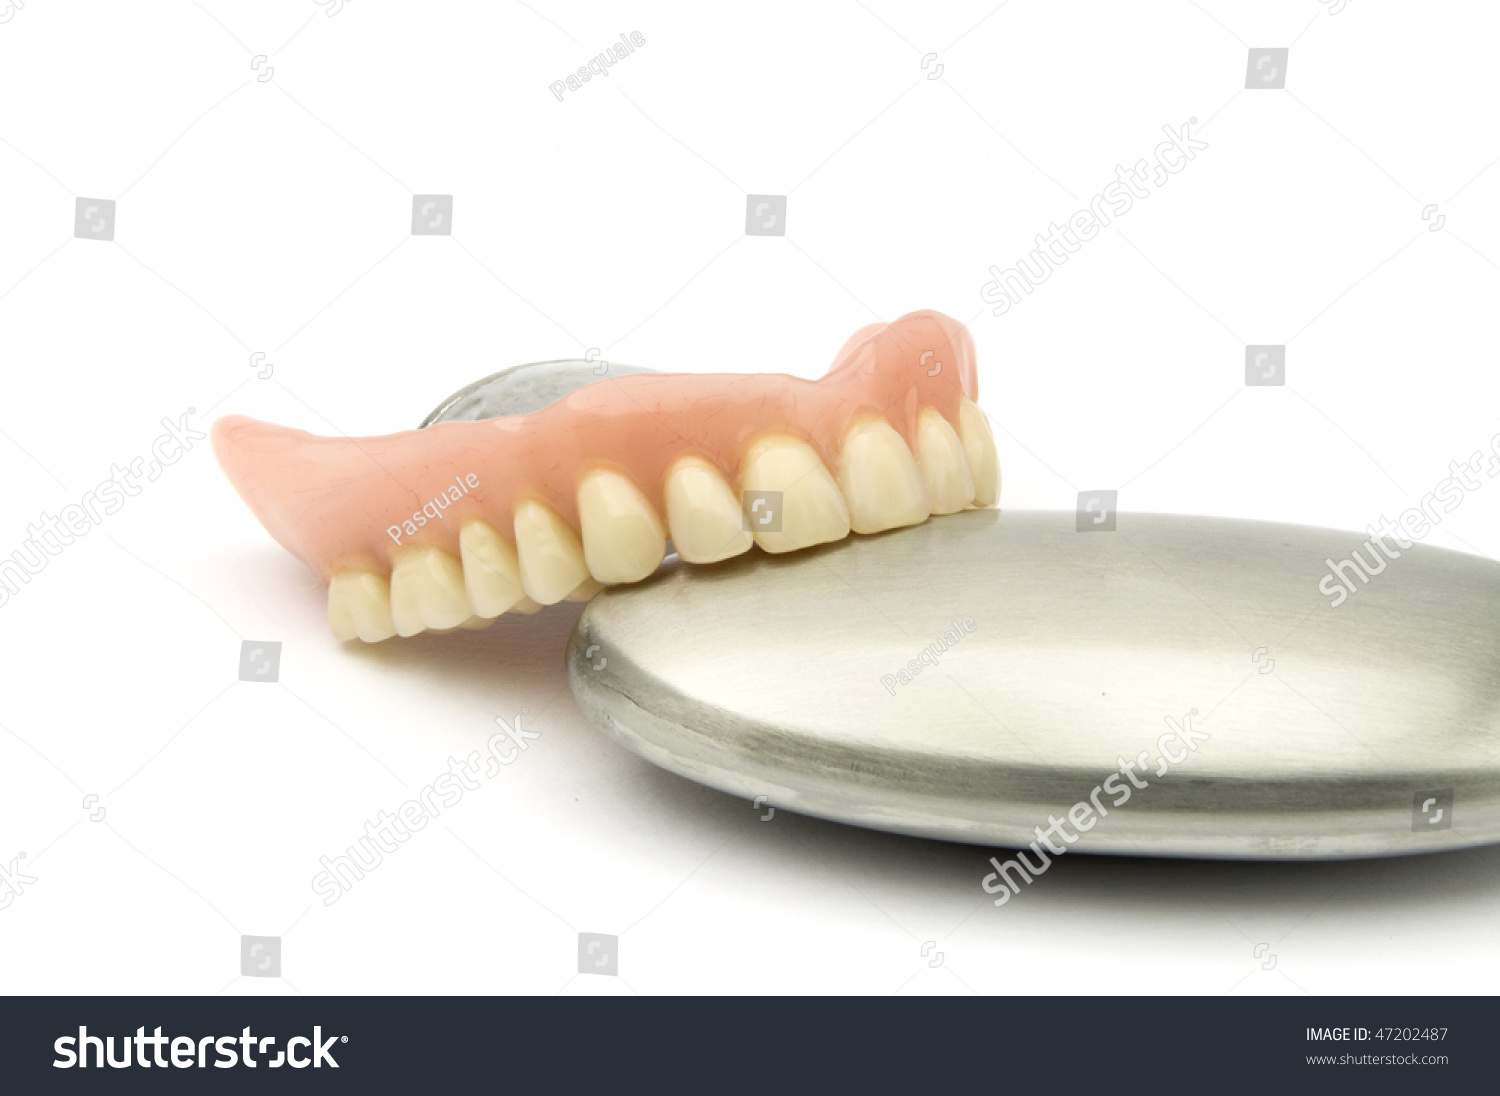 dental removable prothesis A removable dental bridge is a partial denture that you take out to clean every day, but usually not until after an adjustment period.